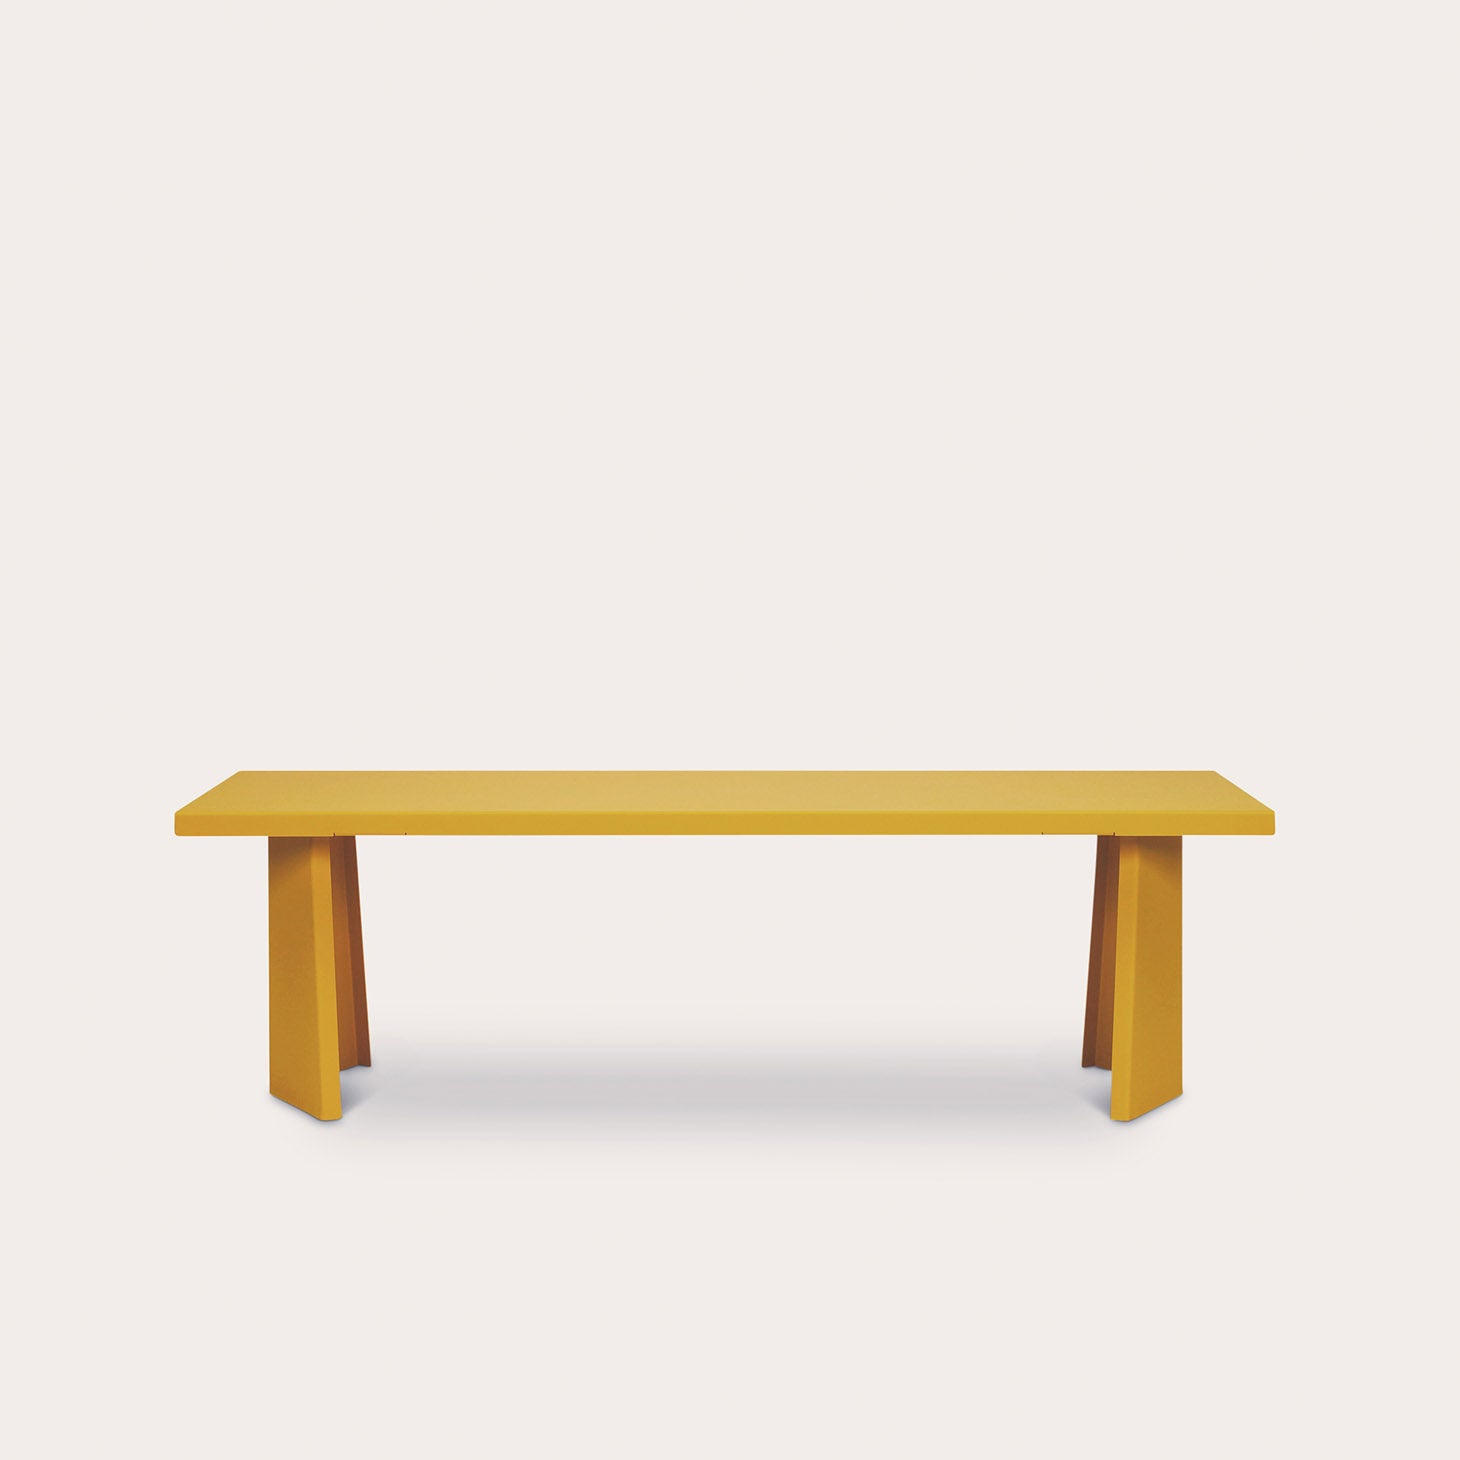 Pallas Tables Konstantin Grcic Designer Furniture Sku: 001-230-10157